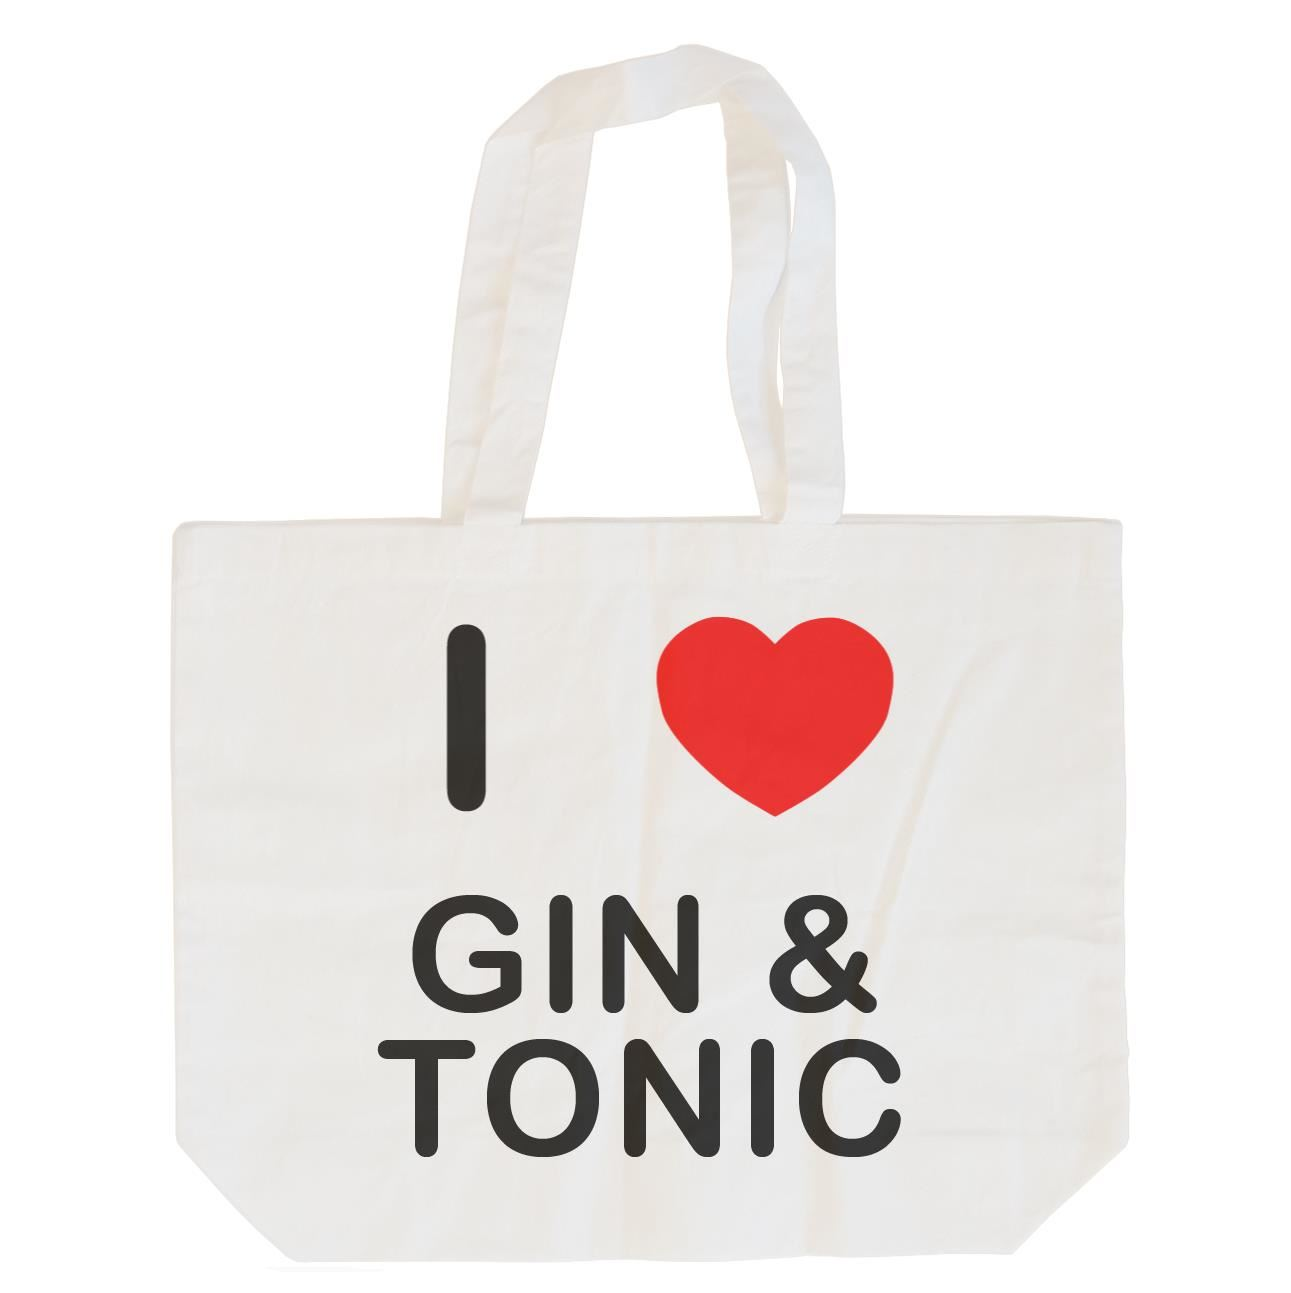 I Love Gin and Tonic - Cotton Bag | Size choice Tote, Shopper or Sling